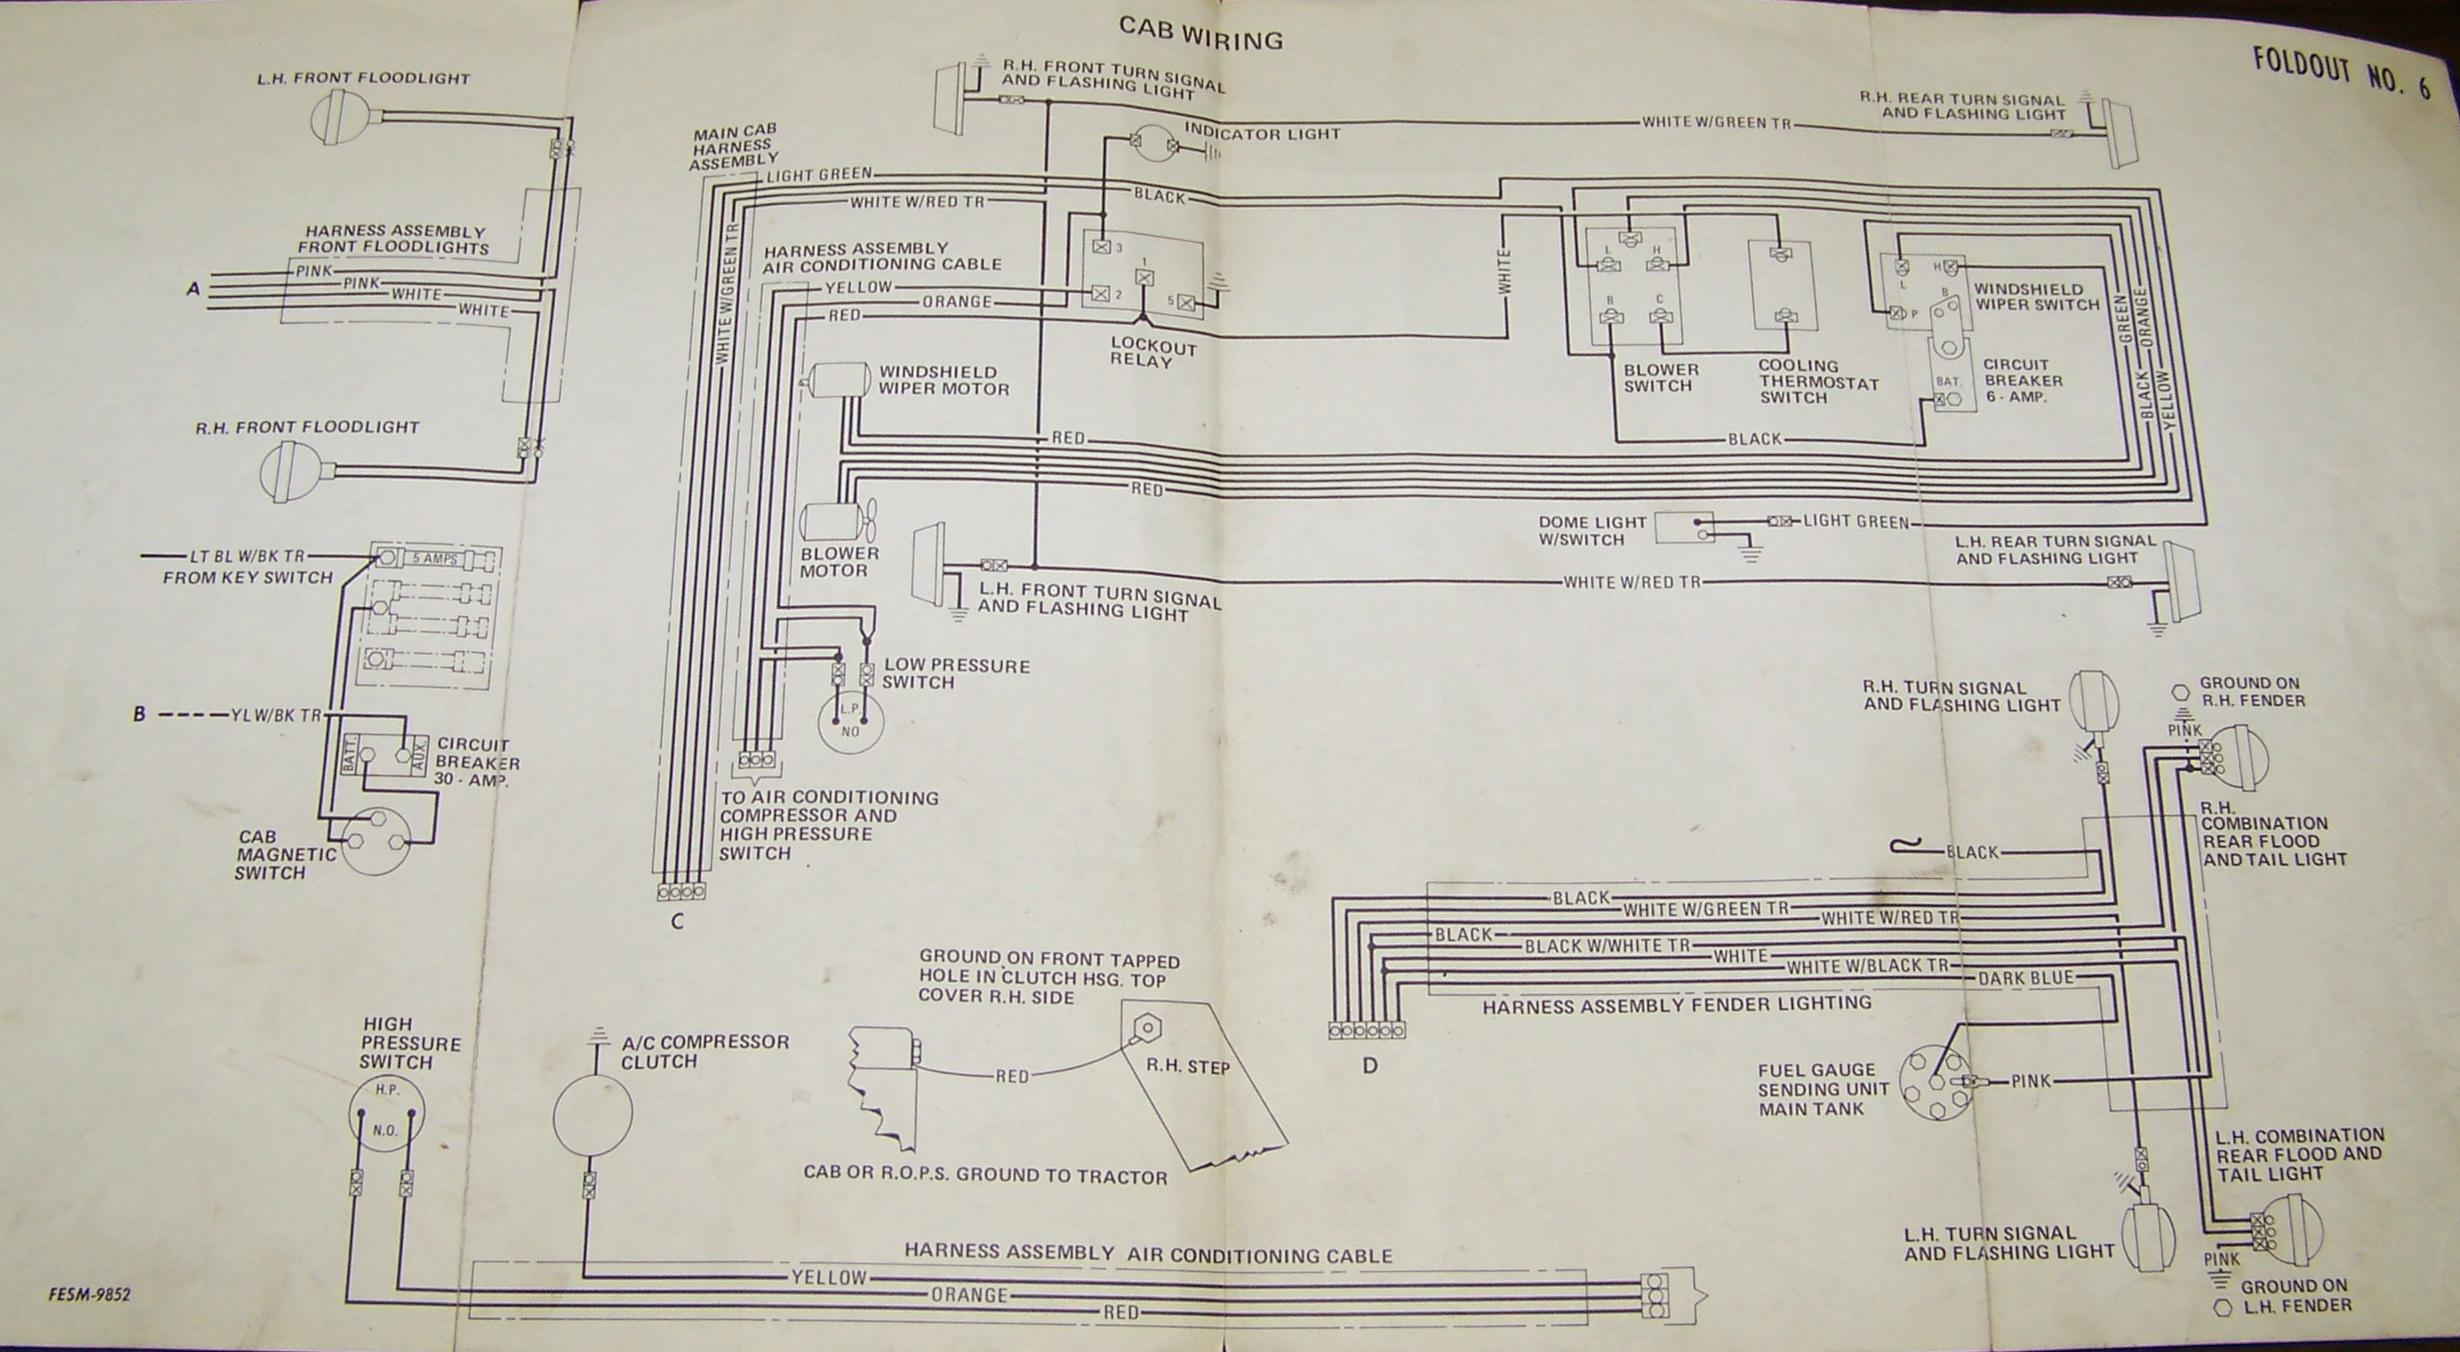 international tractor 674 wiring diagram swimming pool filter system carter gruenewald co inc ih farmall electrical 86 series foldout 5